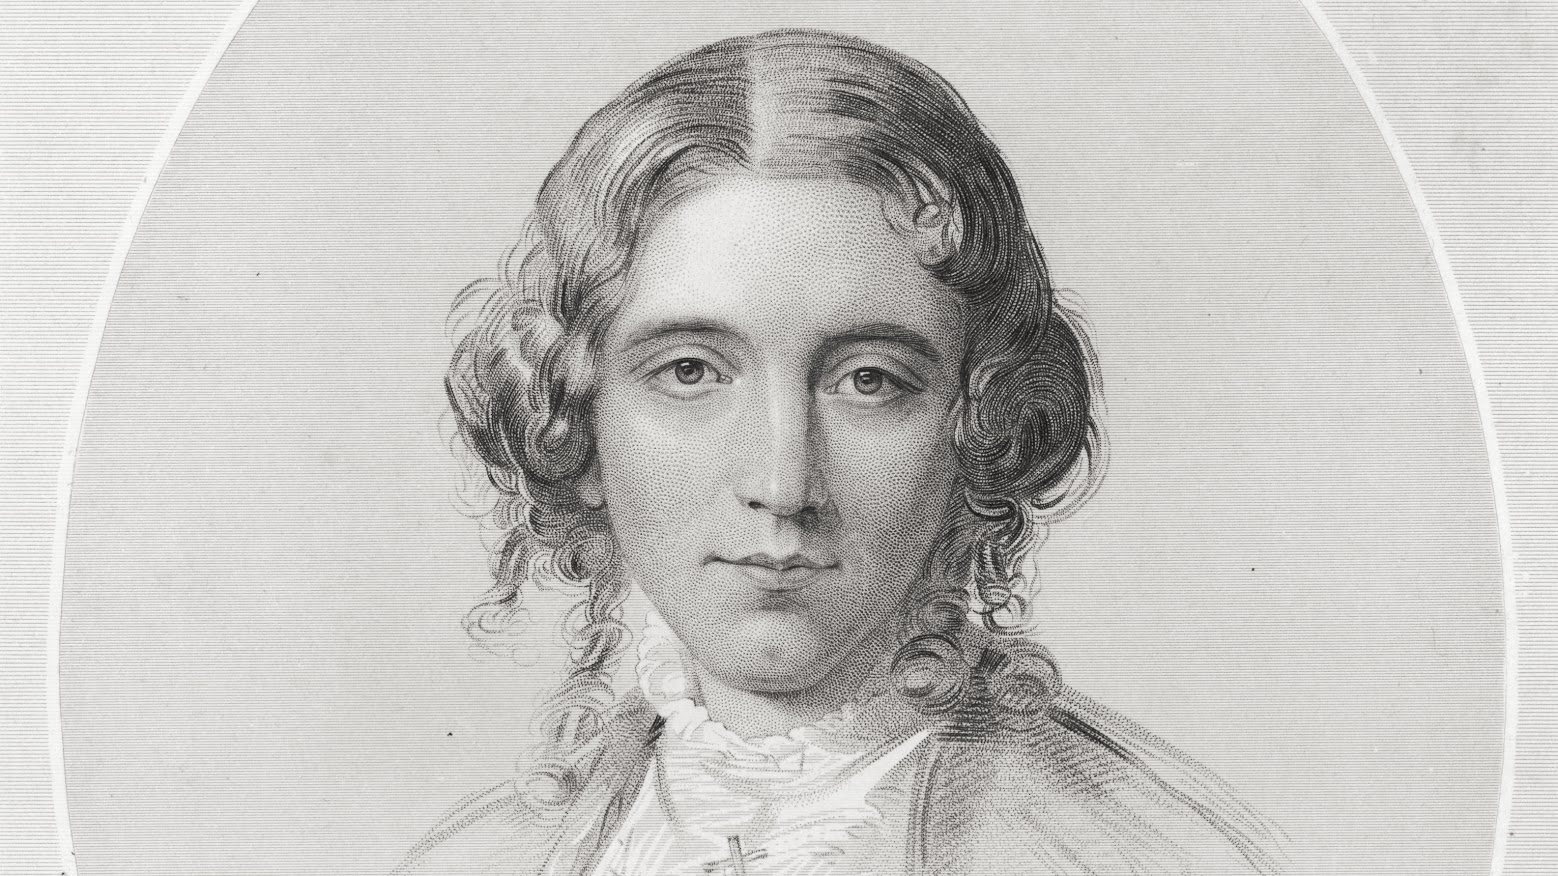 a biography of harriet beecher stowe an american abolitionist and author Harriet beecher stowe ms hedrick spoke about harriet beecher stowe, the abolitionist and author of uncle tom's cabinshe also talked about the process of writing a biography.